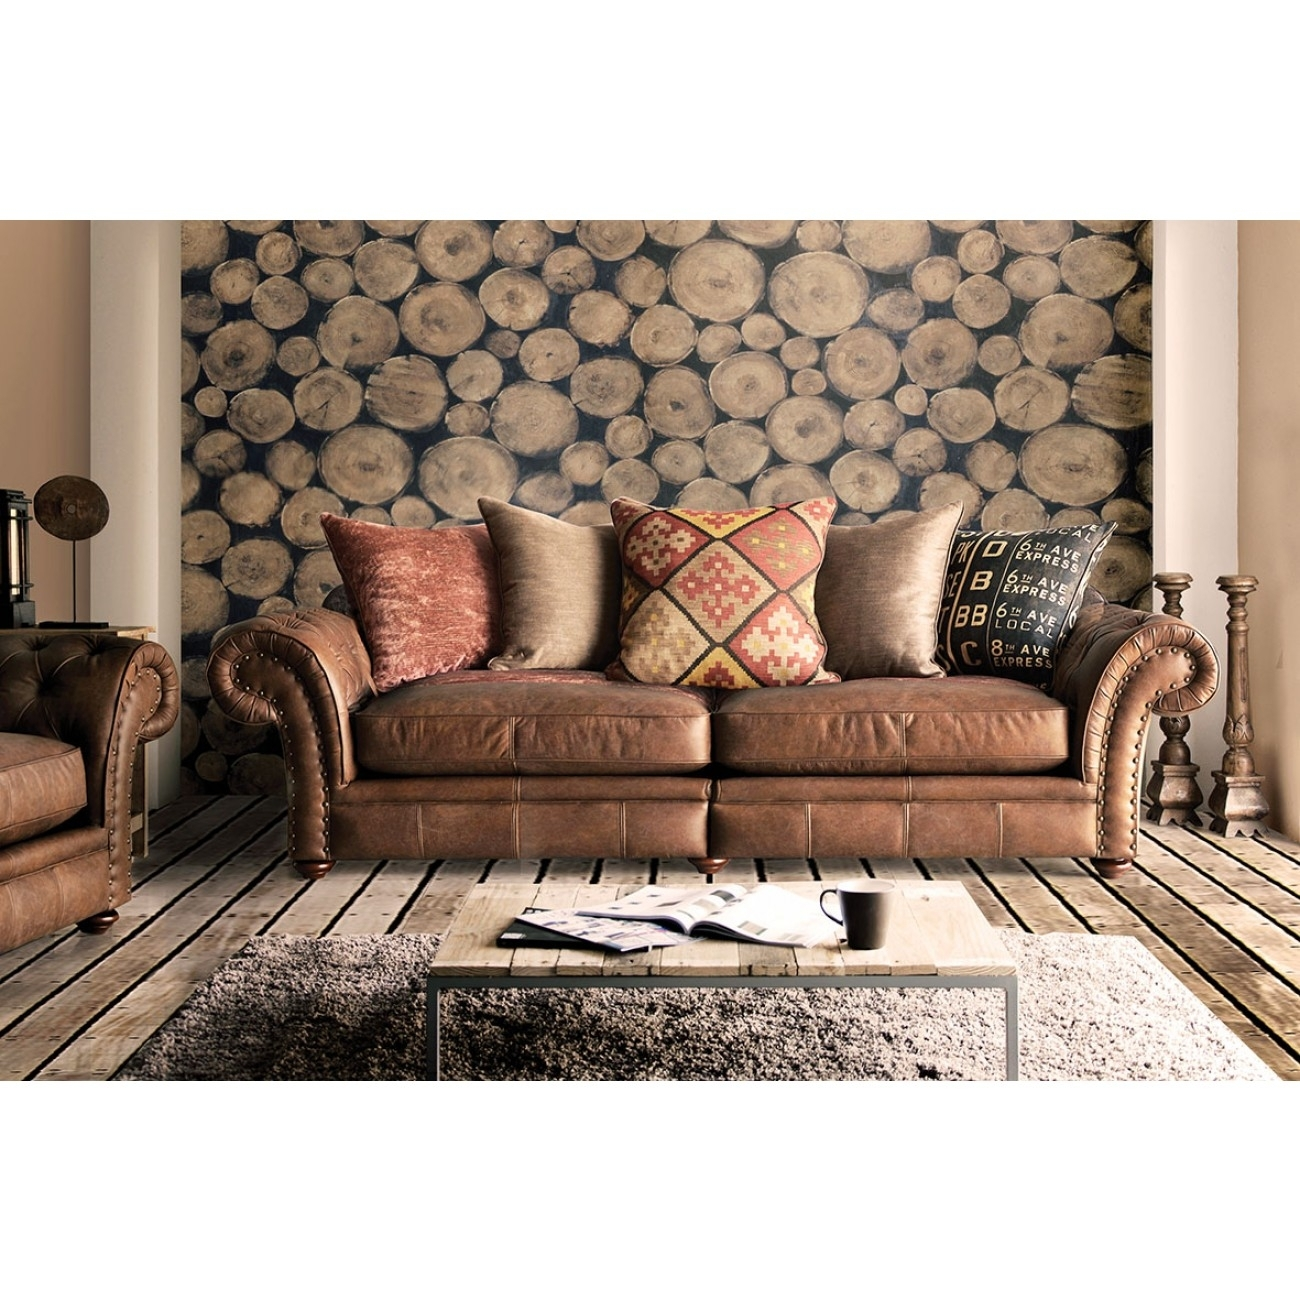 Best Leather And Fabric Sofas 34 Sofa Room Ideas With Leather And Regarding Leather And Cloth Sofas (View 2 of 10)